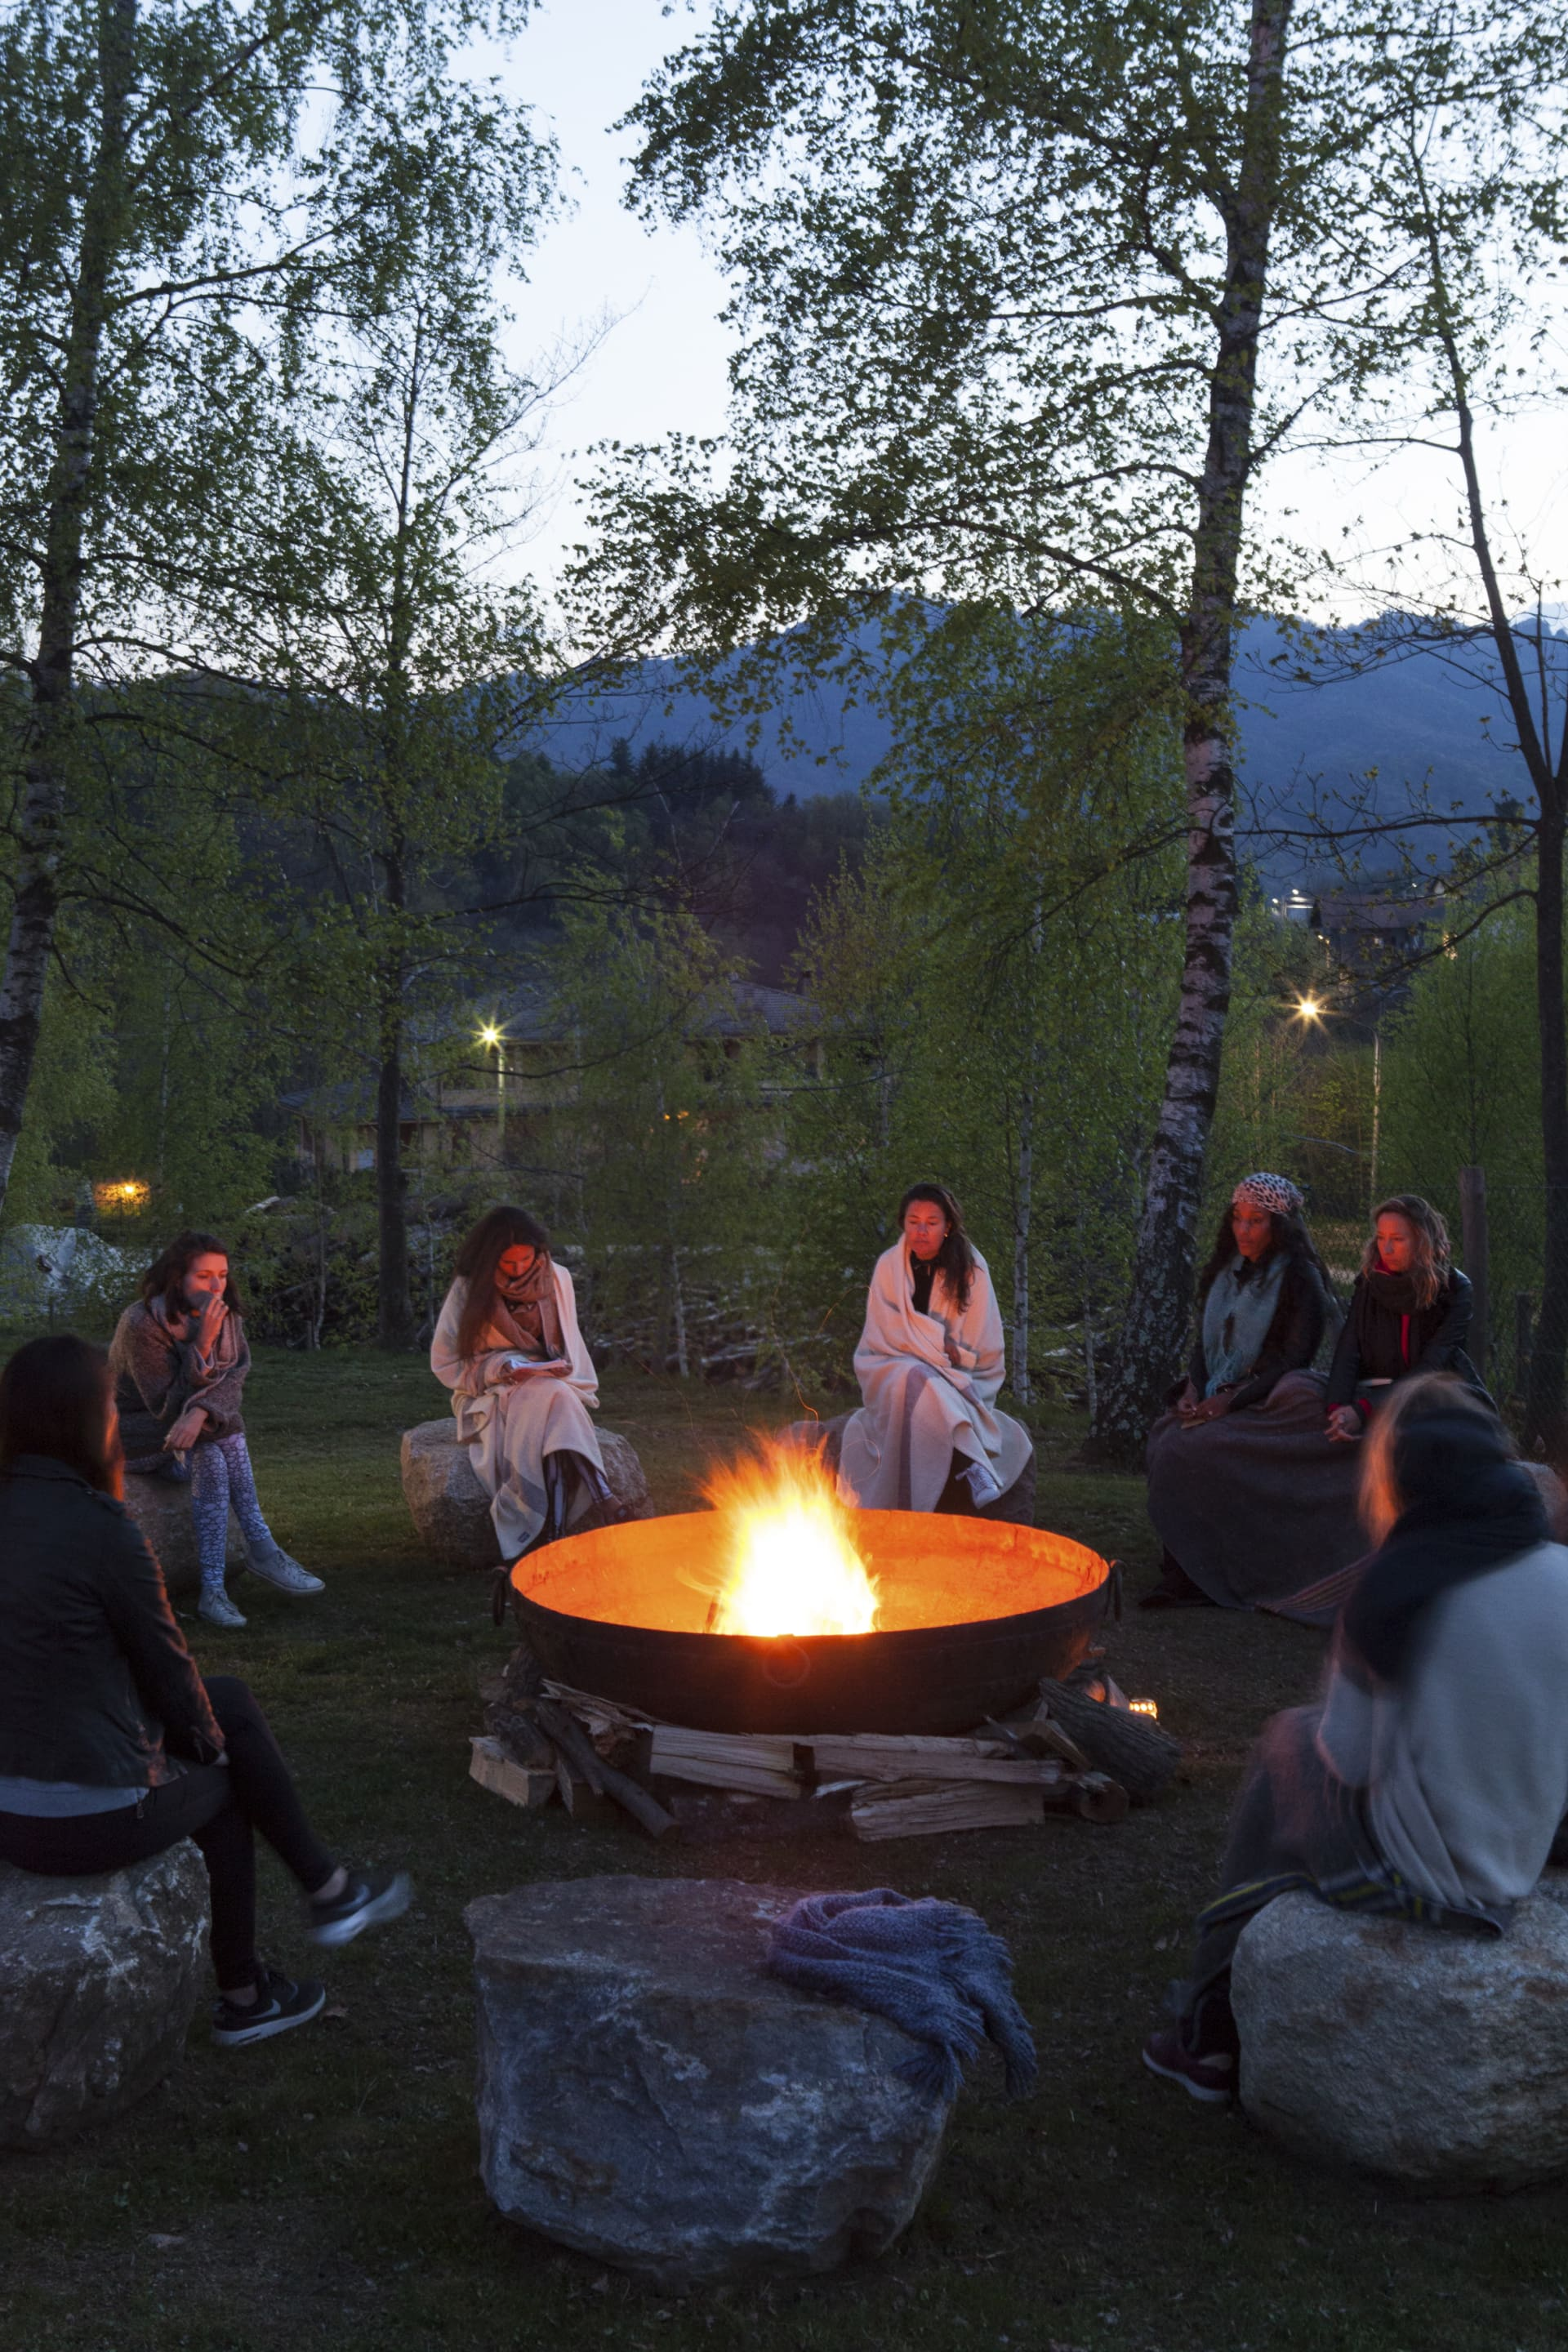 Full moon celebration at the fireplace with the small village of Quarna Sopra on the background.